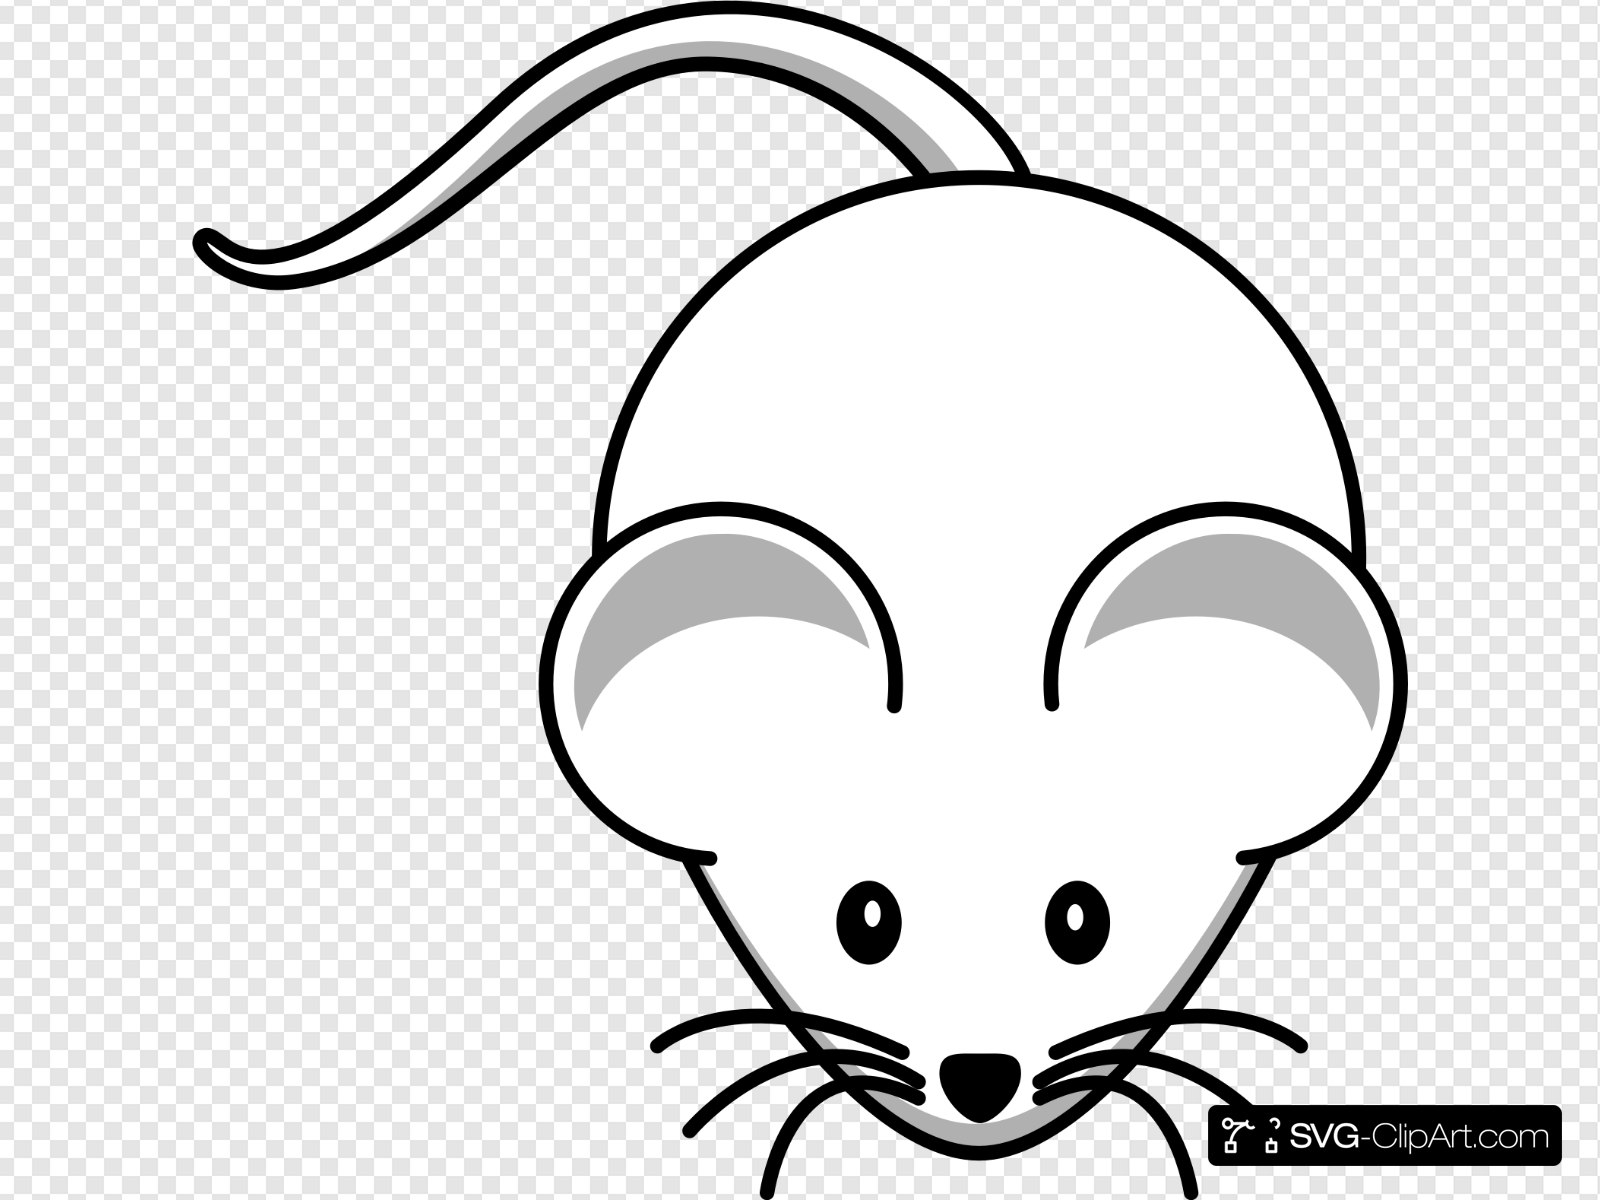 Mouse Clipart Cartoon Mouse Cartoon Transparent Free For Download On Webstockreview 2020